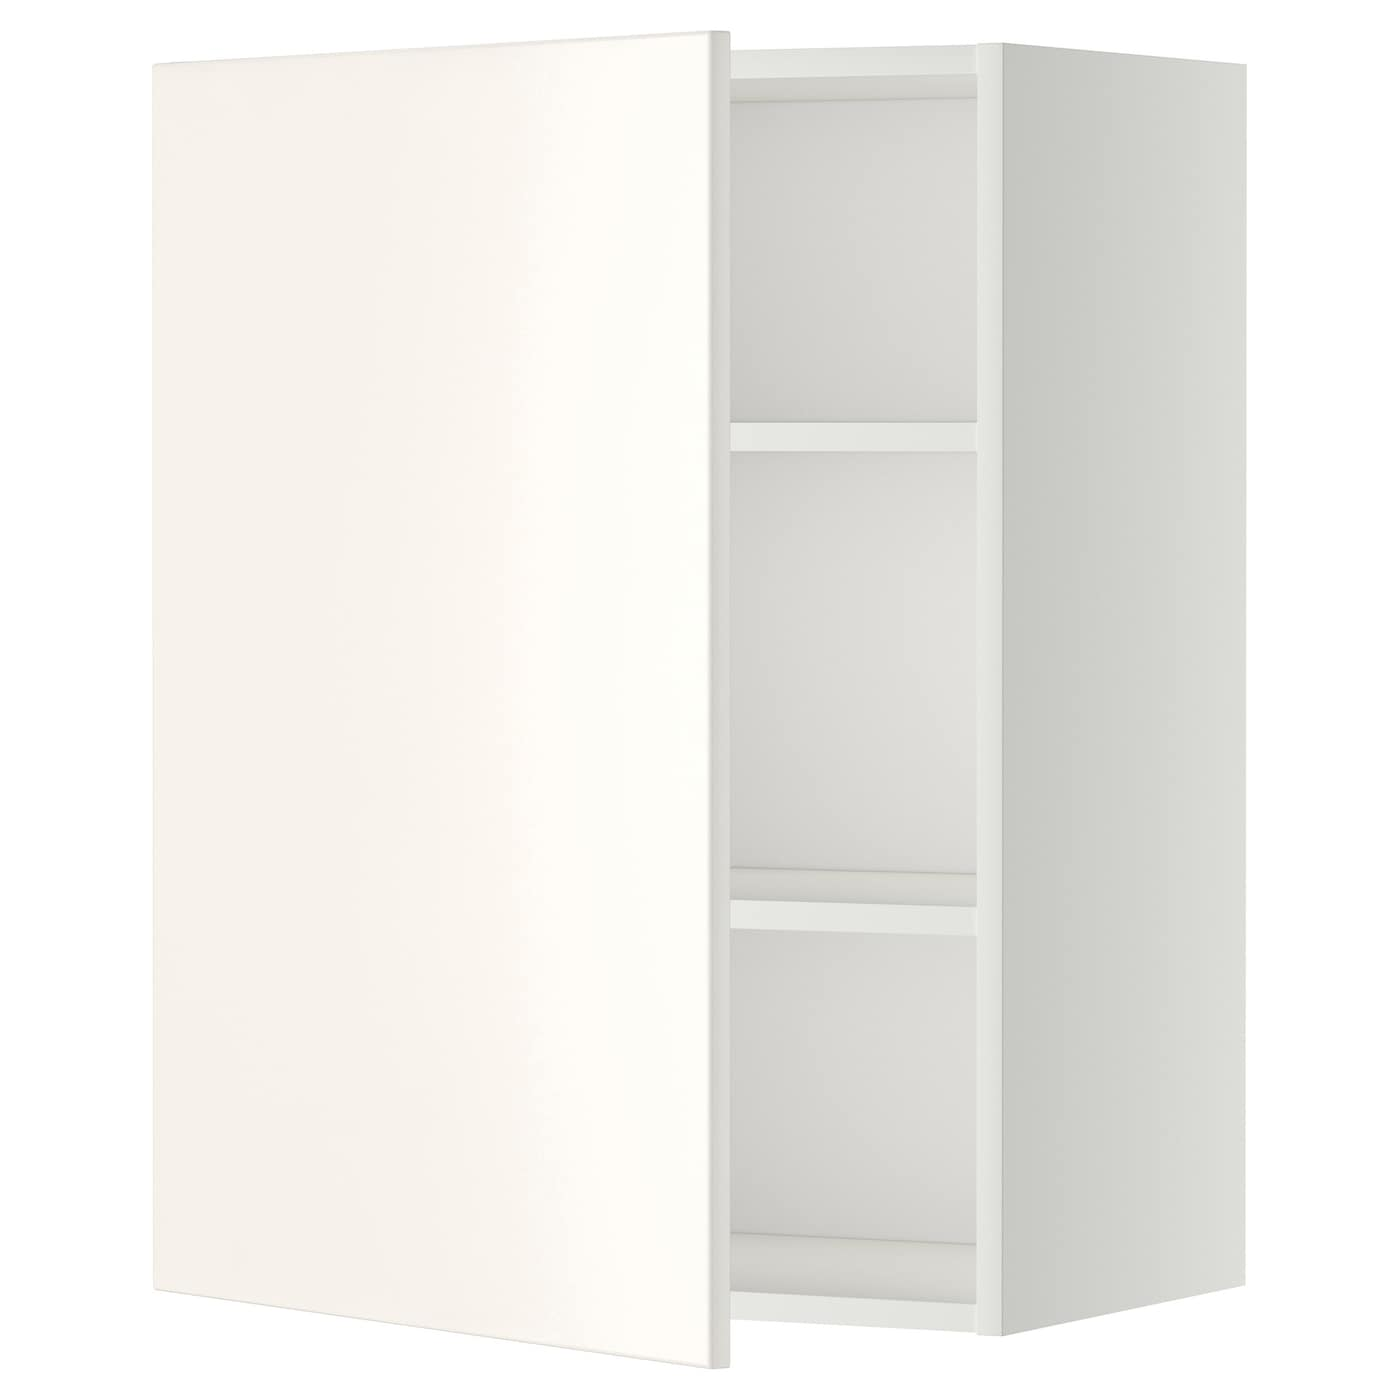 Metod Wall Cabinet With Shelves: METOD Wall Cabinet With Shelves White/veddinge White 60 X